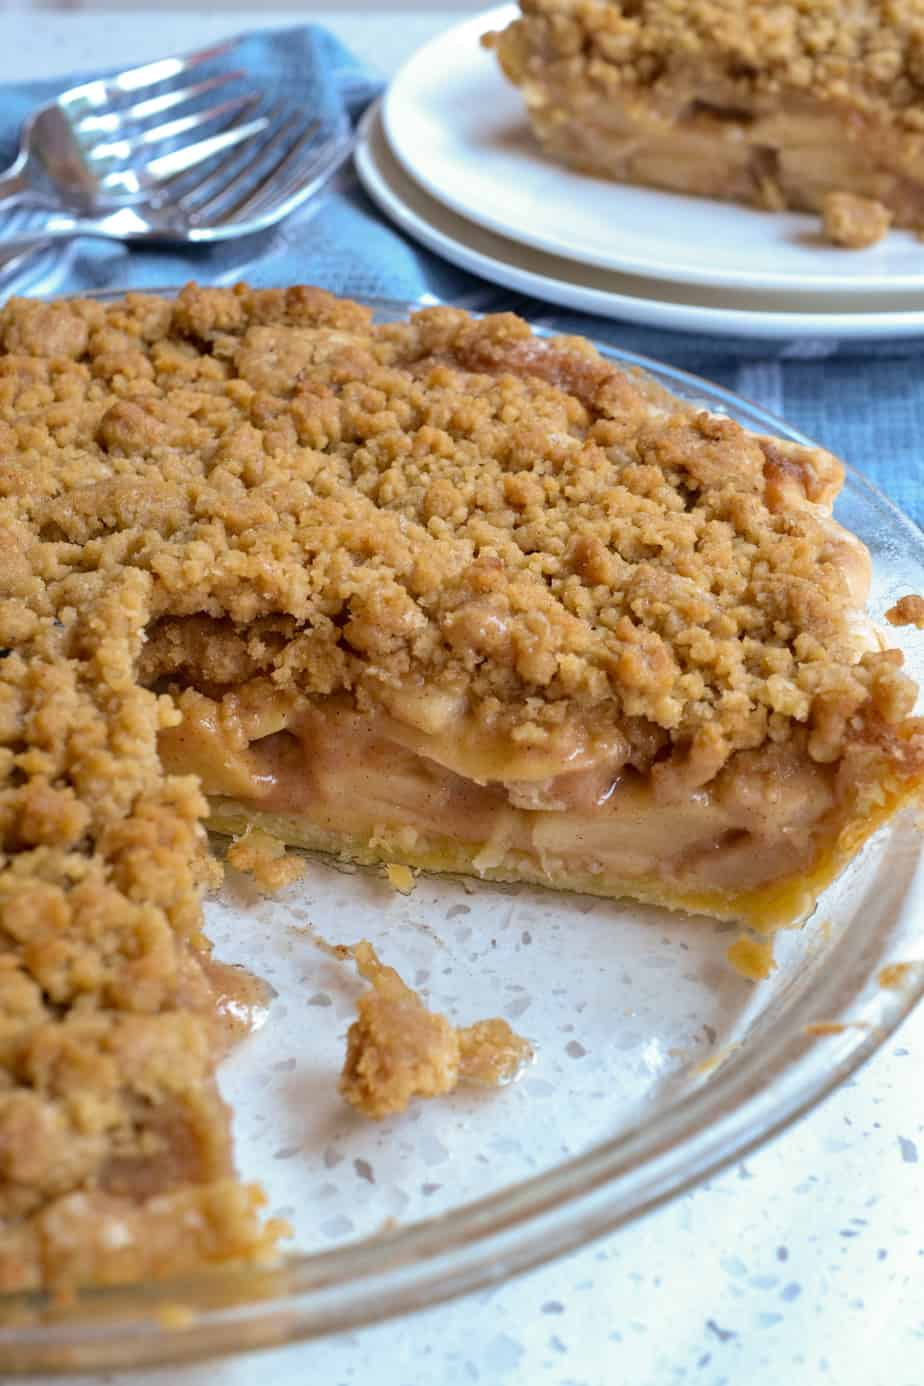 An Apple Crumb Pie with a slice cut out of it.